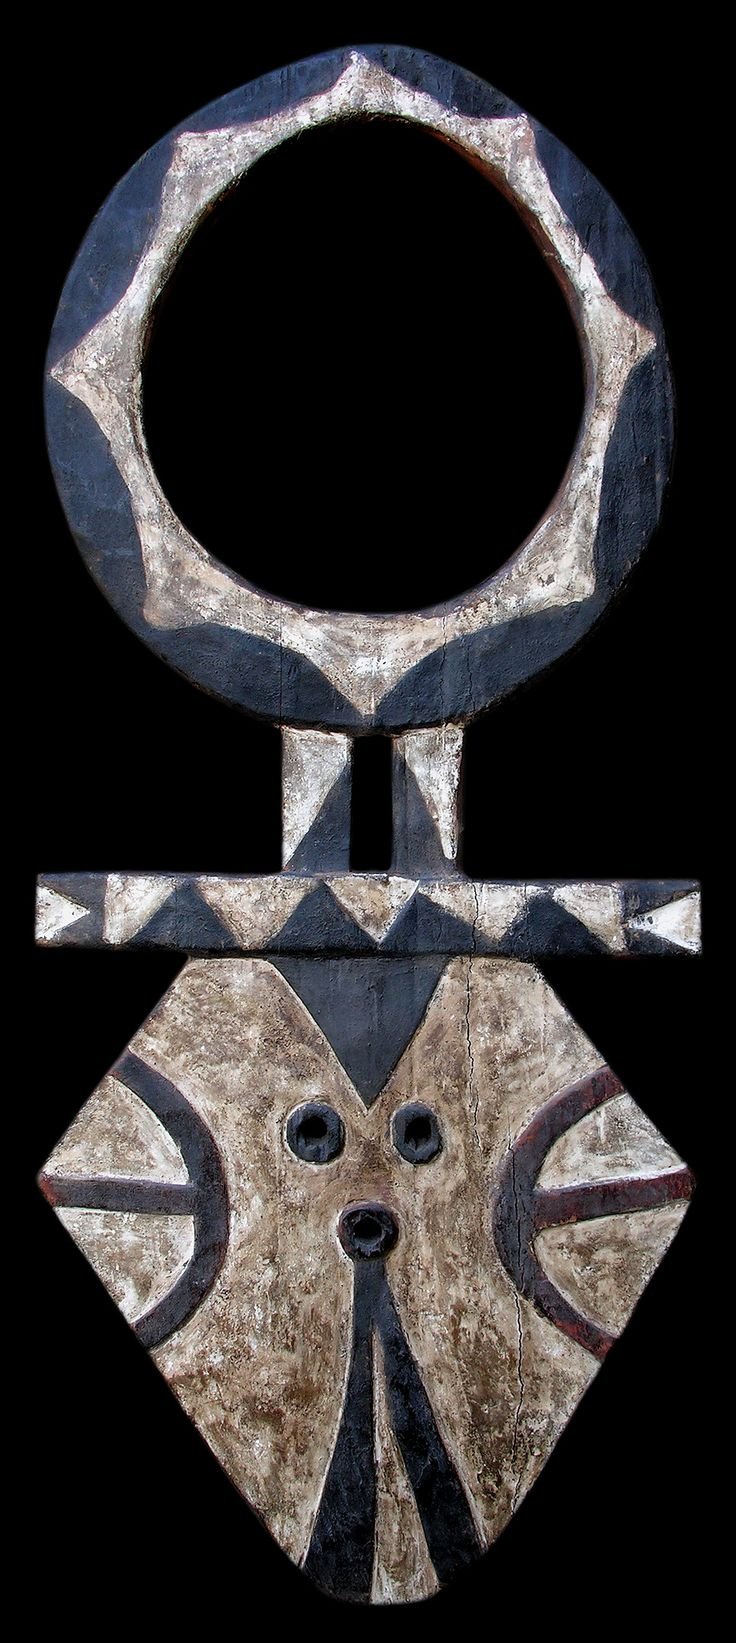 Africa | Bedu mask from the Nafana people of the Ivory Coast or Ghana | Wood with pigment